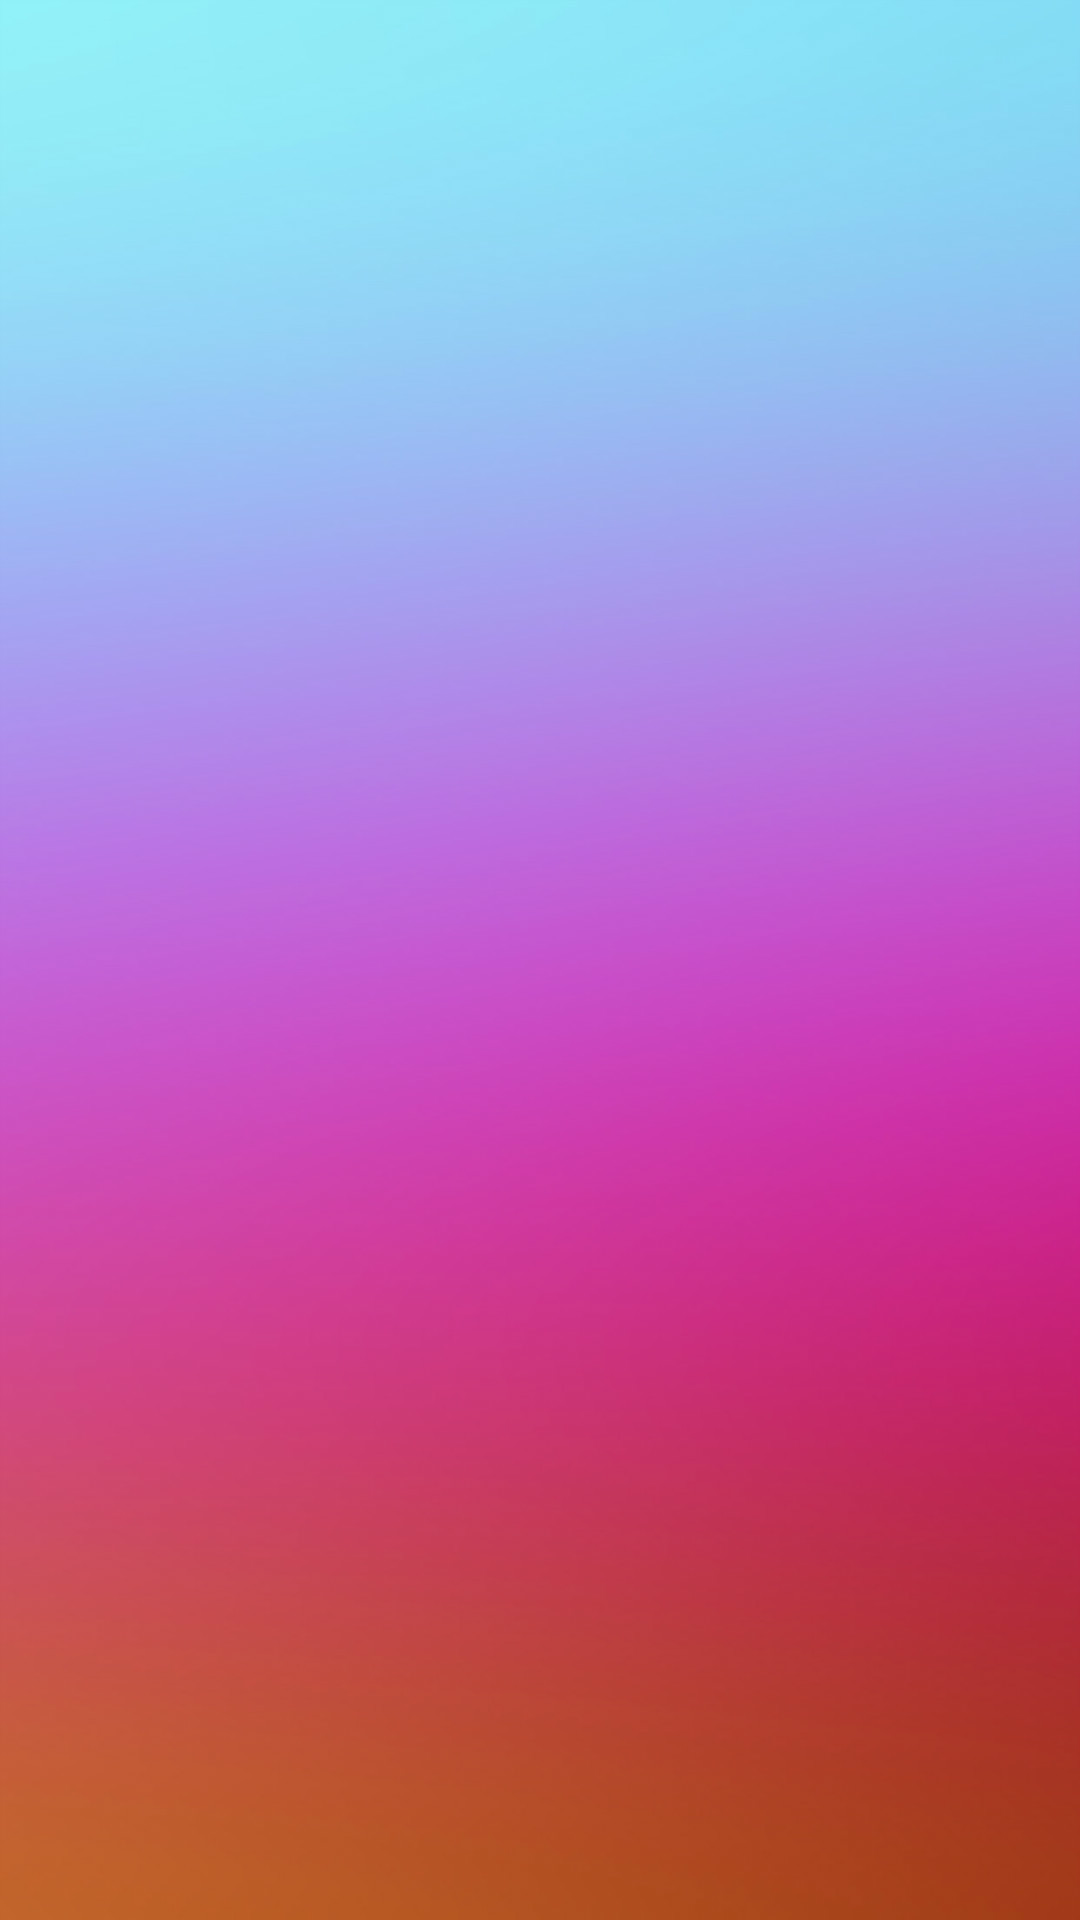 Blue And Red Color Gradation Blur iPhone 6 wallpaper